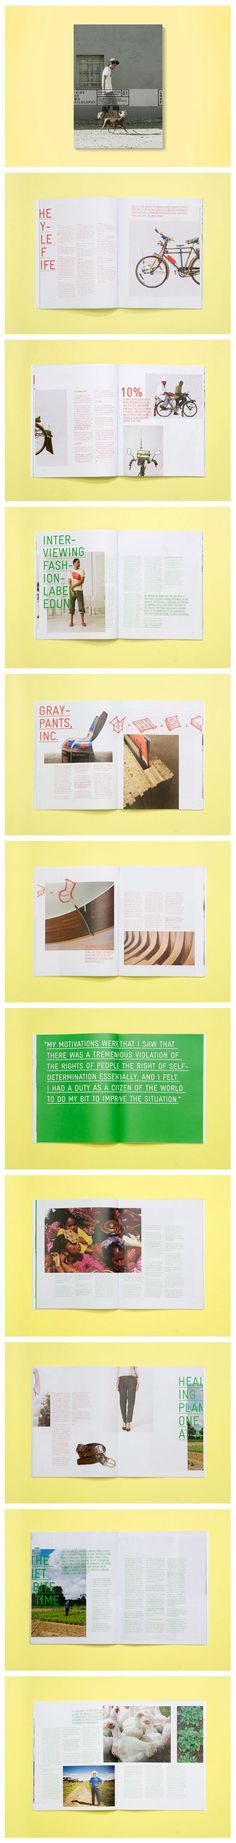 brochure/print reference - love this layout and design Graphic Design Magazine, Magazine Layout Design, Book Design Layout, Print Layout, Graphic Design Layouts, Magazine Layouts, Editorial Design Magazine, Editorial Design Layouts, Brochure Layout